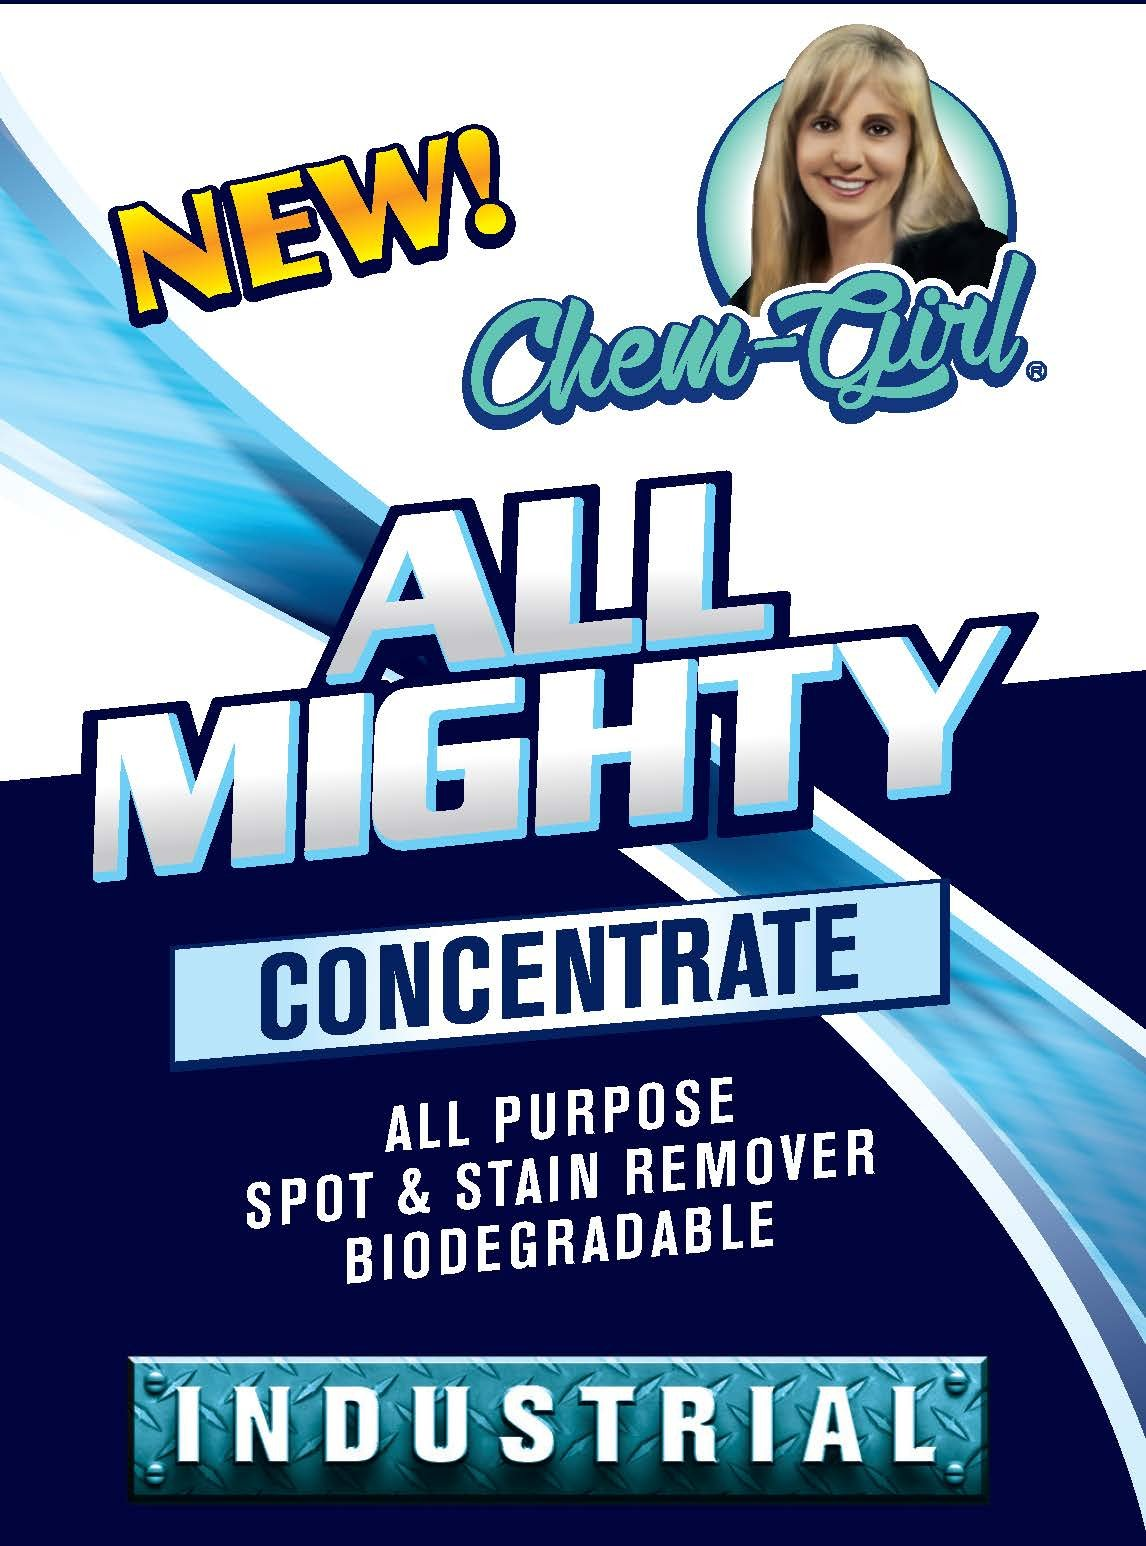 Chem-Girl | All Mighty Concentrate | Biodegradable All Purpose Cleaner | Multi-Surface Household Spot & Stain Remover | Indoor & Outdoor Use | Safe for Carpets, Clothing, Countertops, Walls & More